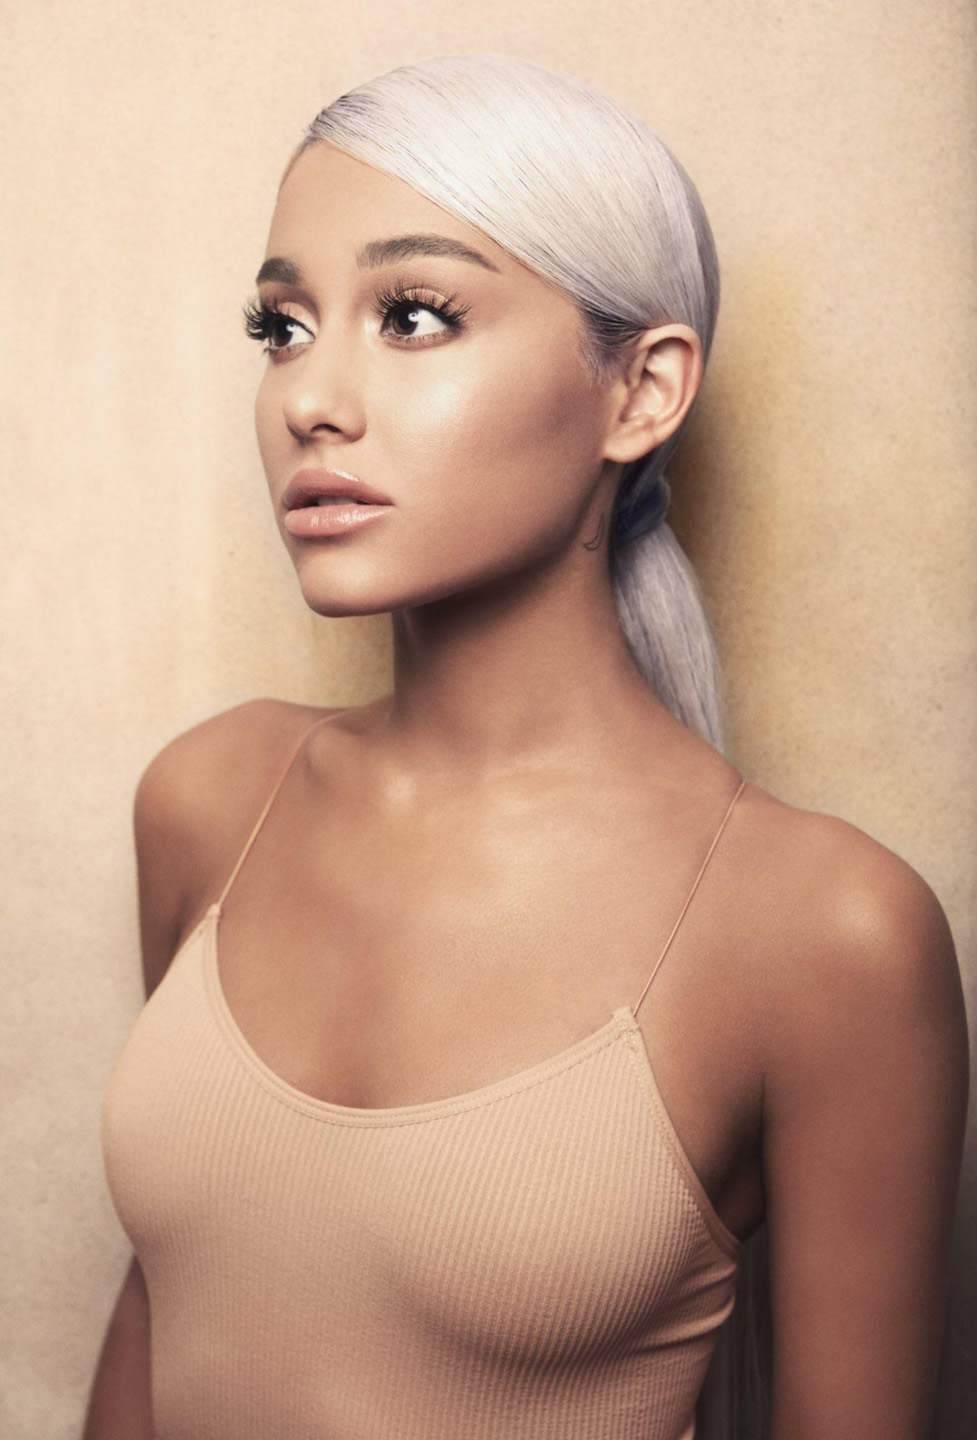 Ariana Grande Sweetener Album Art Photoshoot